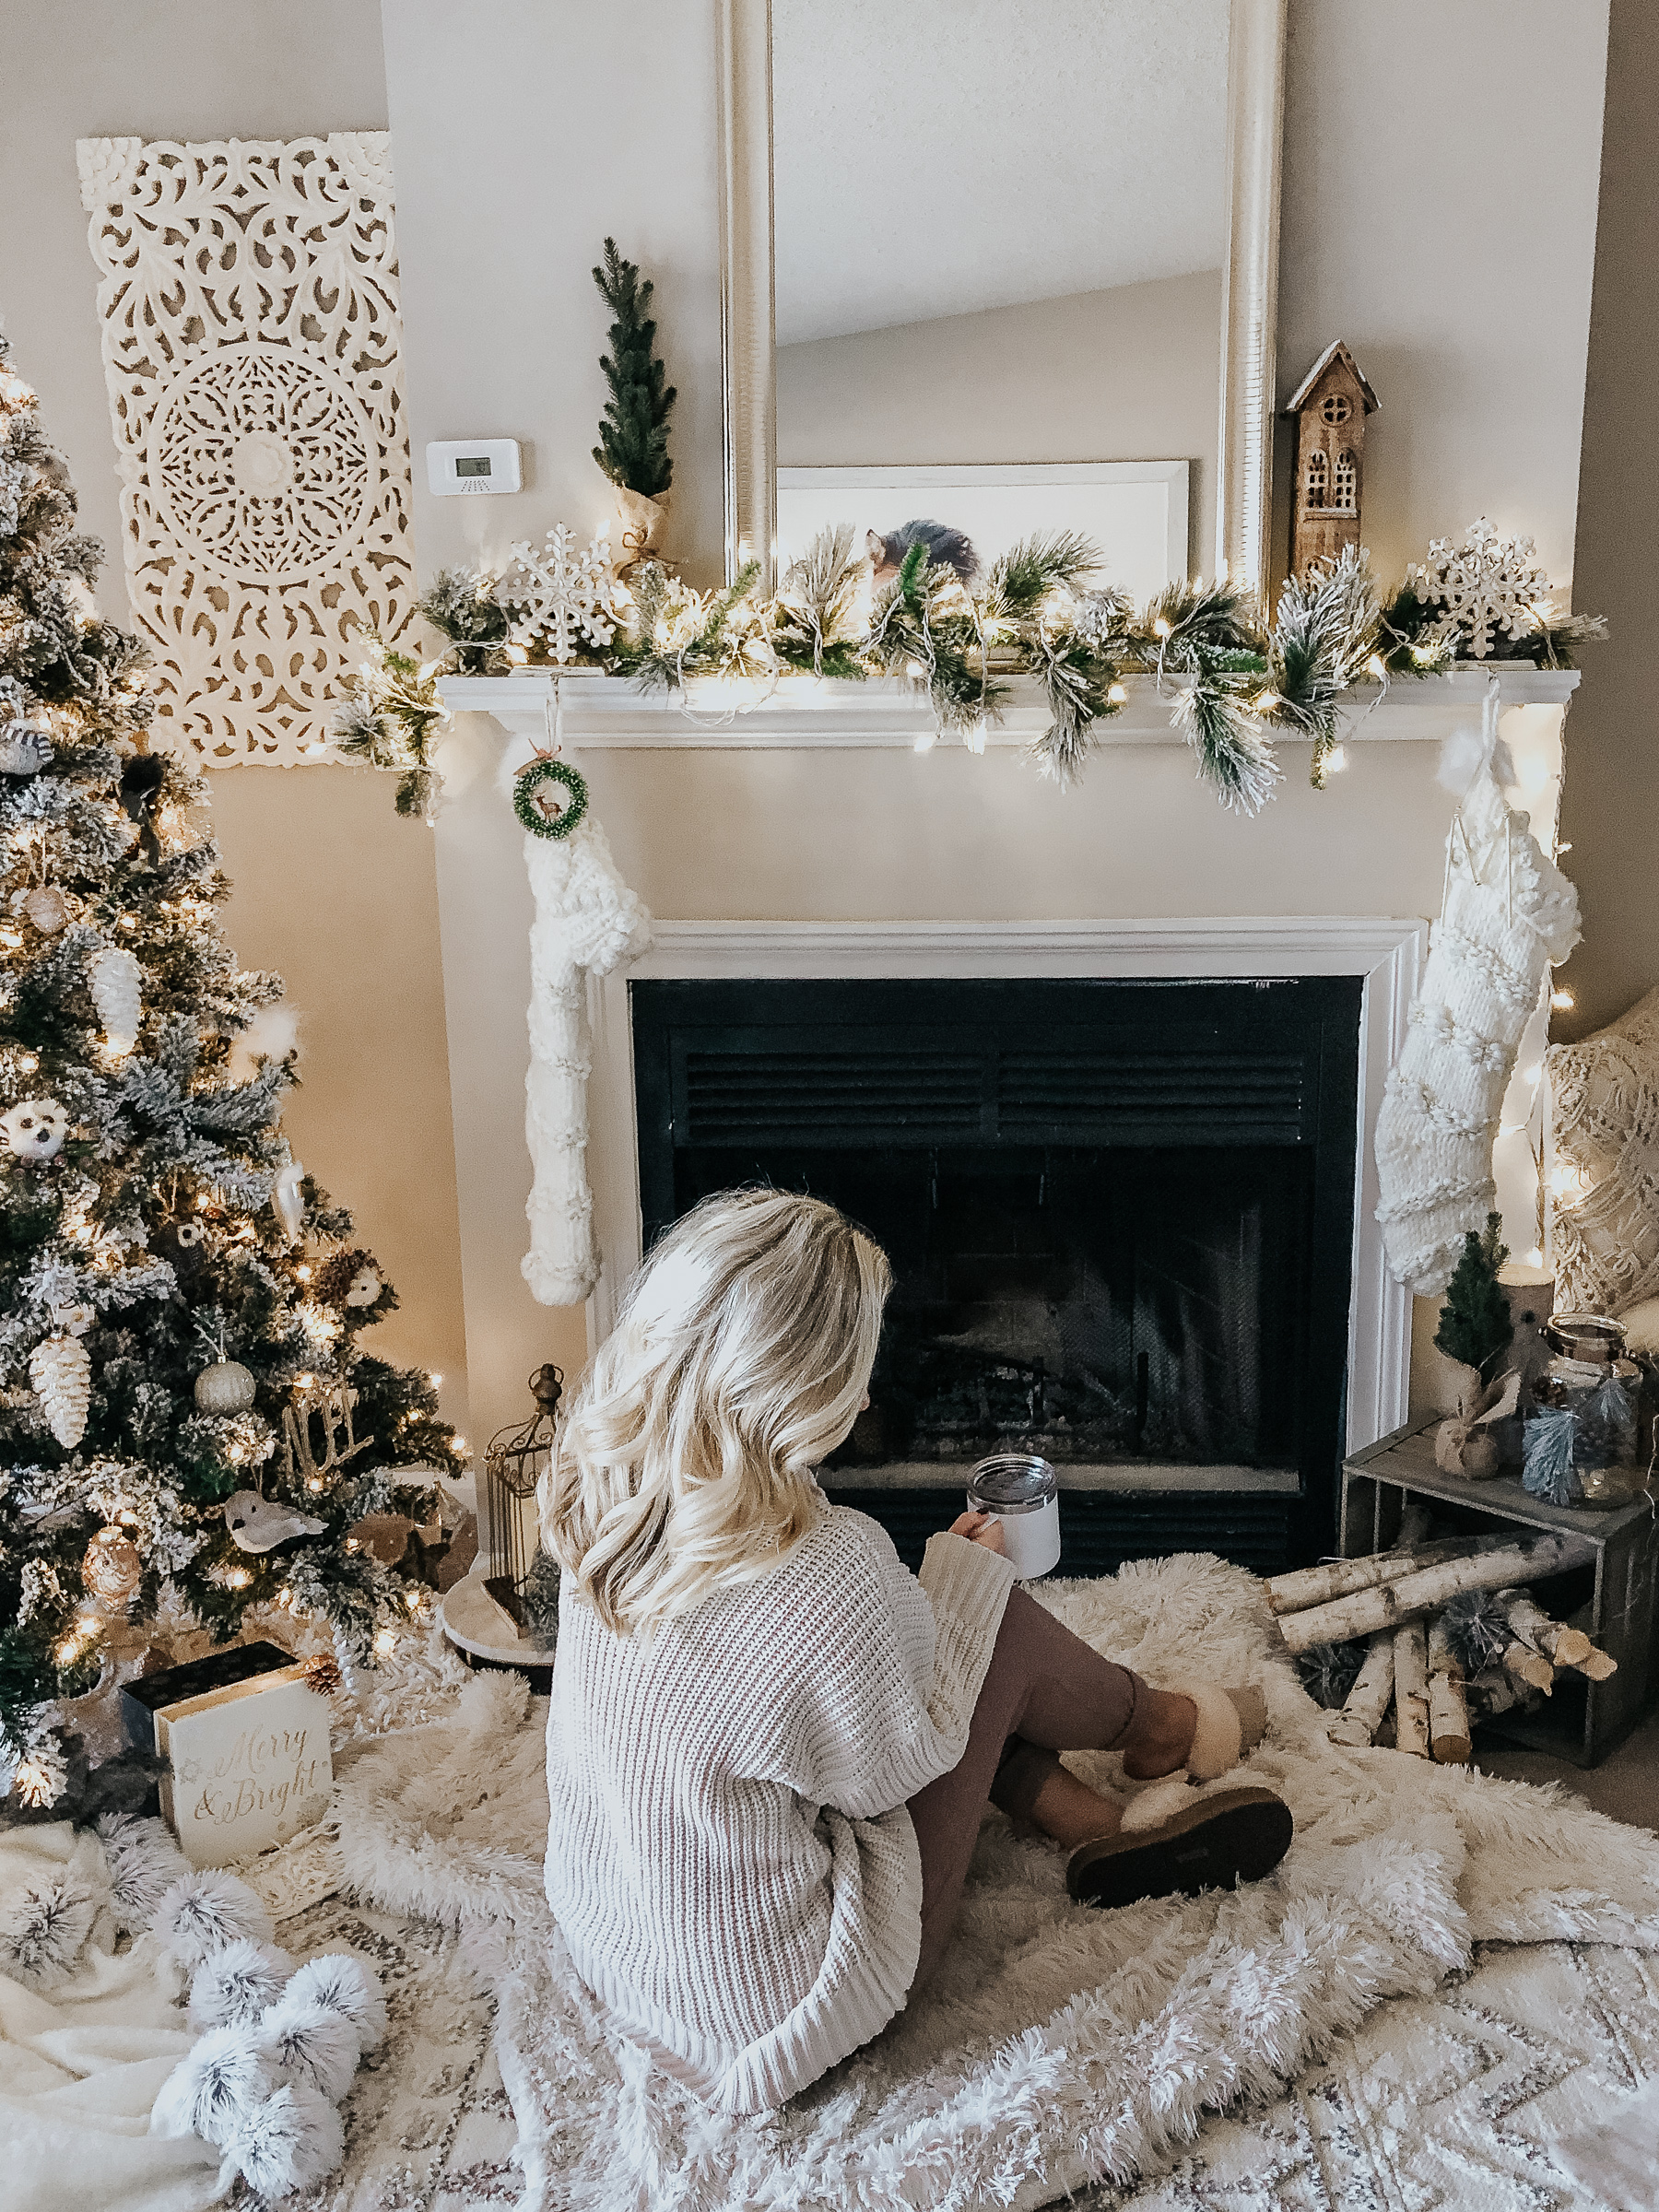 5 Tips for Decorating a Small Space for the Holidays - Style ...